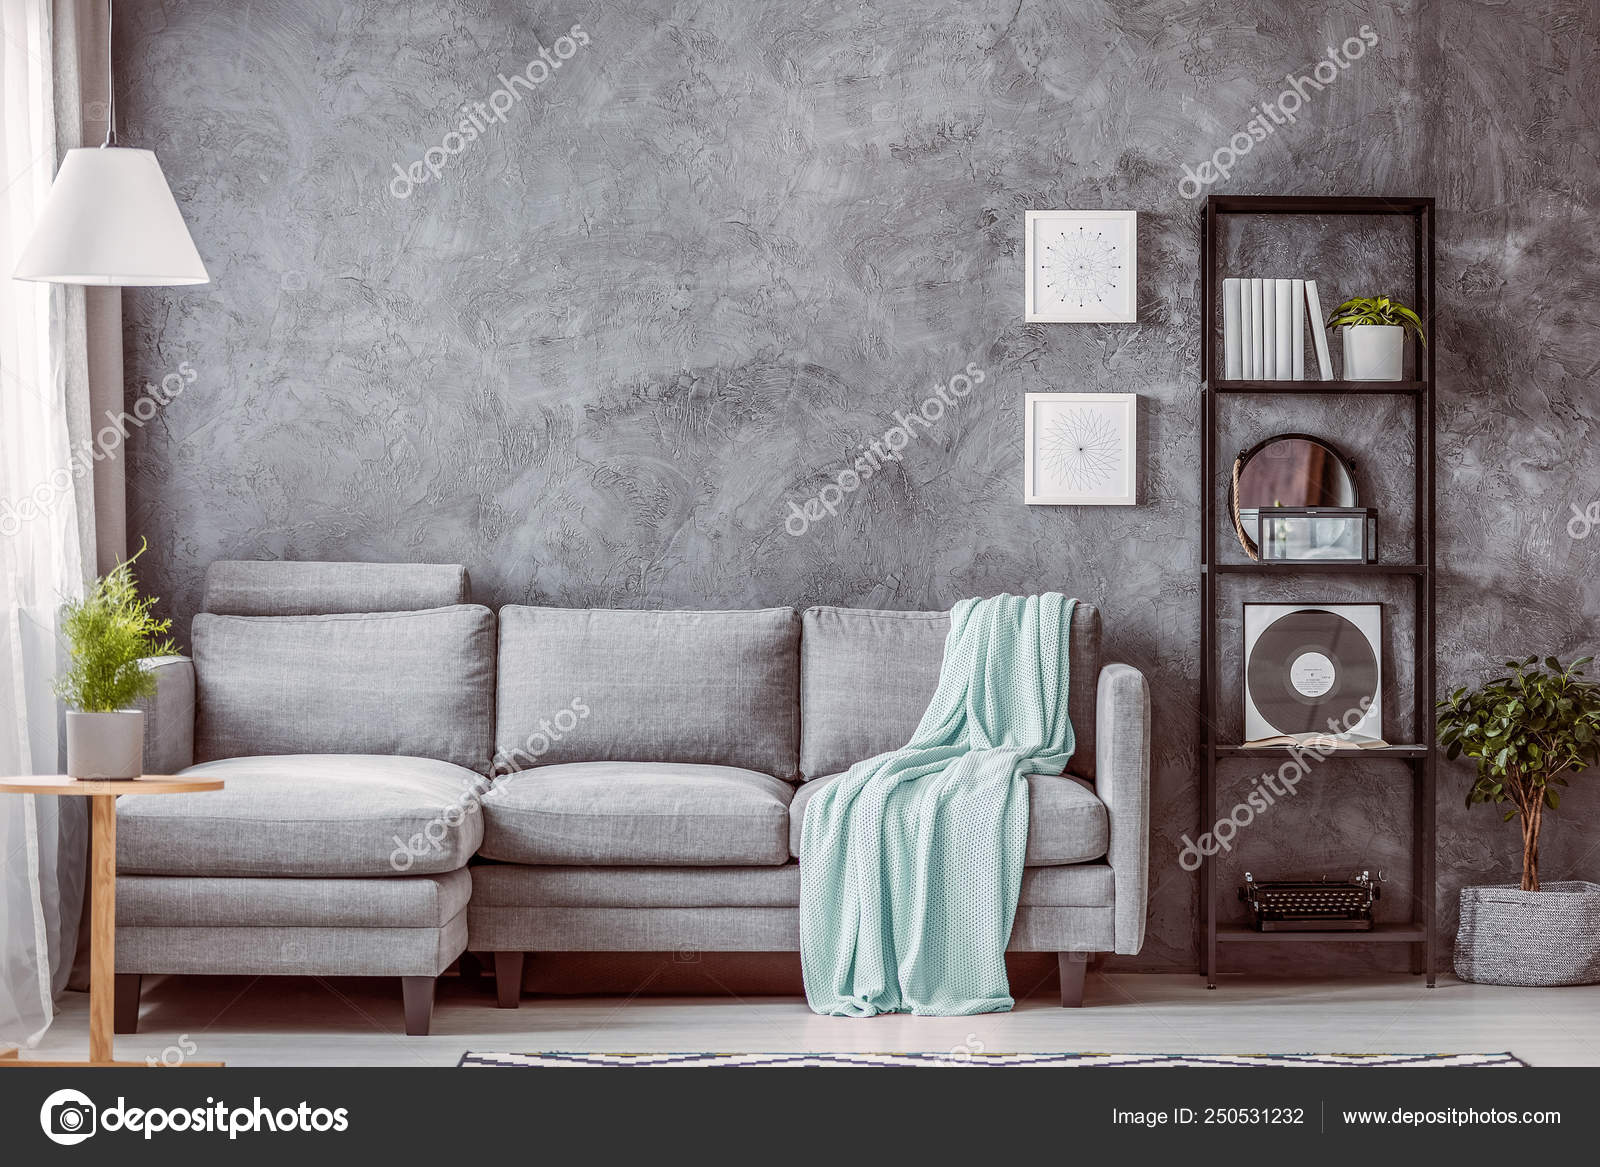 Mint Green Blanket On Grey Comfortable Couch In Contemporary